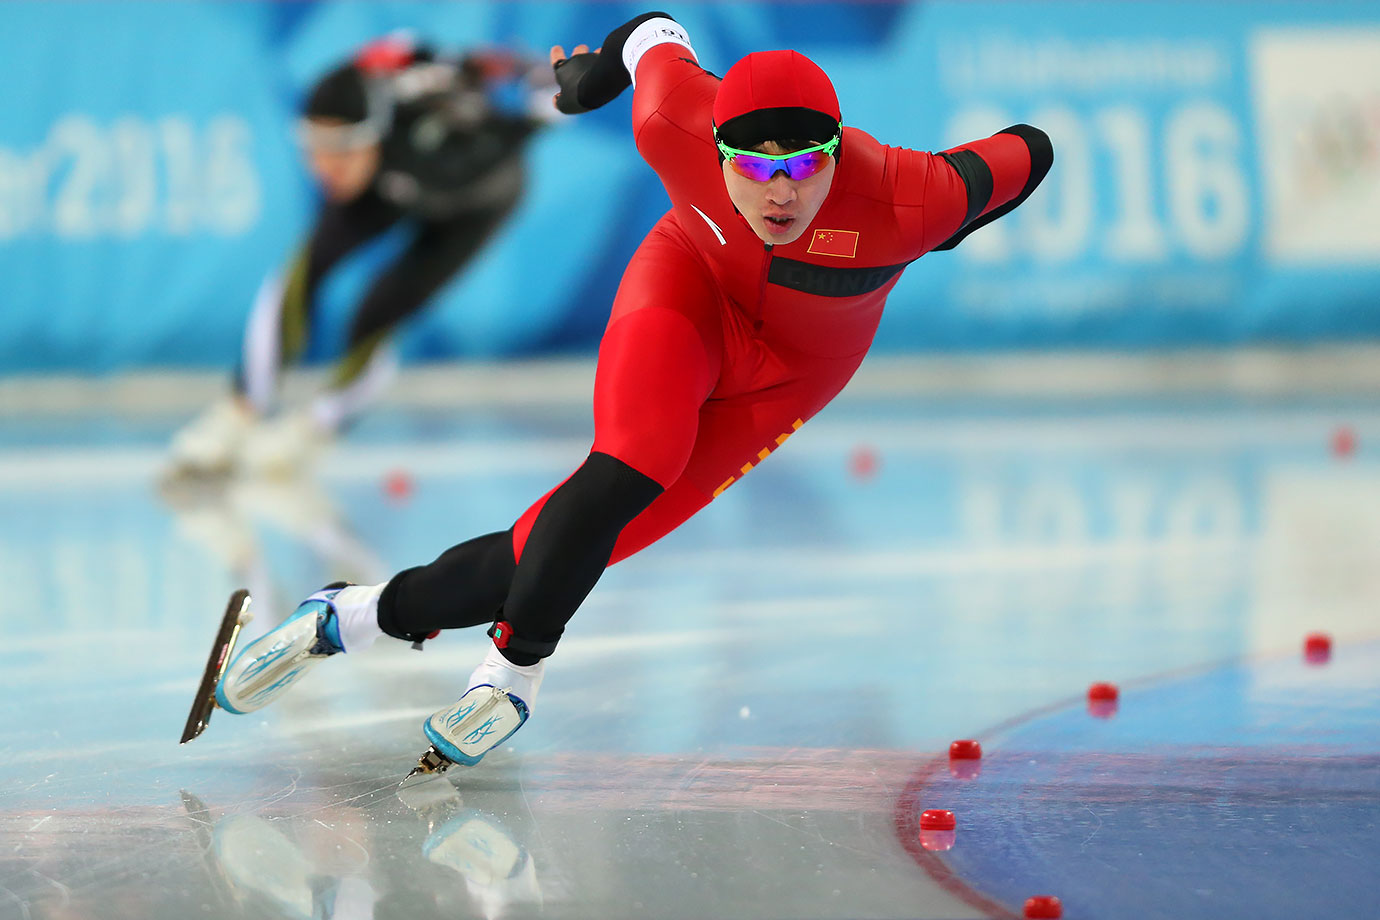 Gold medalist Li Yanzhe (CHN) competes in the Men's 500m Speed Skating race on Feb. 13, 2016 during the Winter Youth Olympic Games in Lillehammer, Norway.